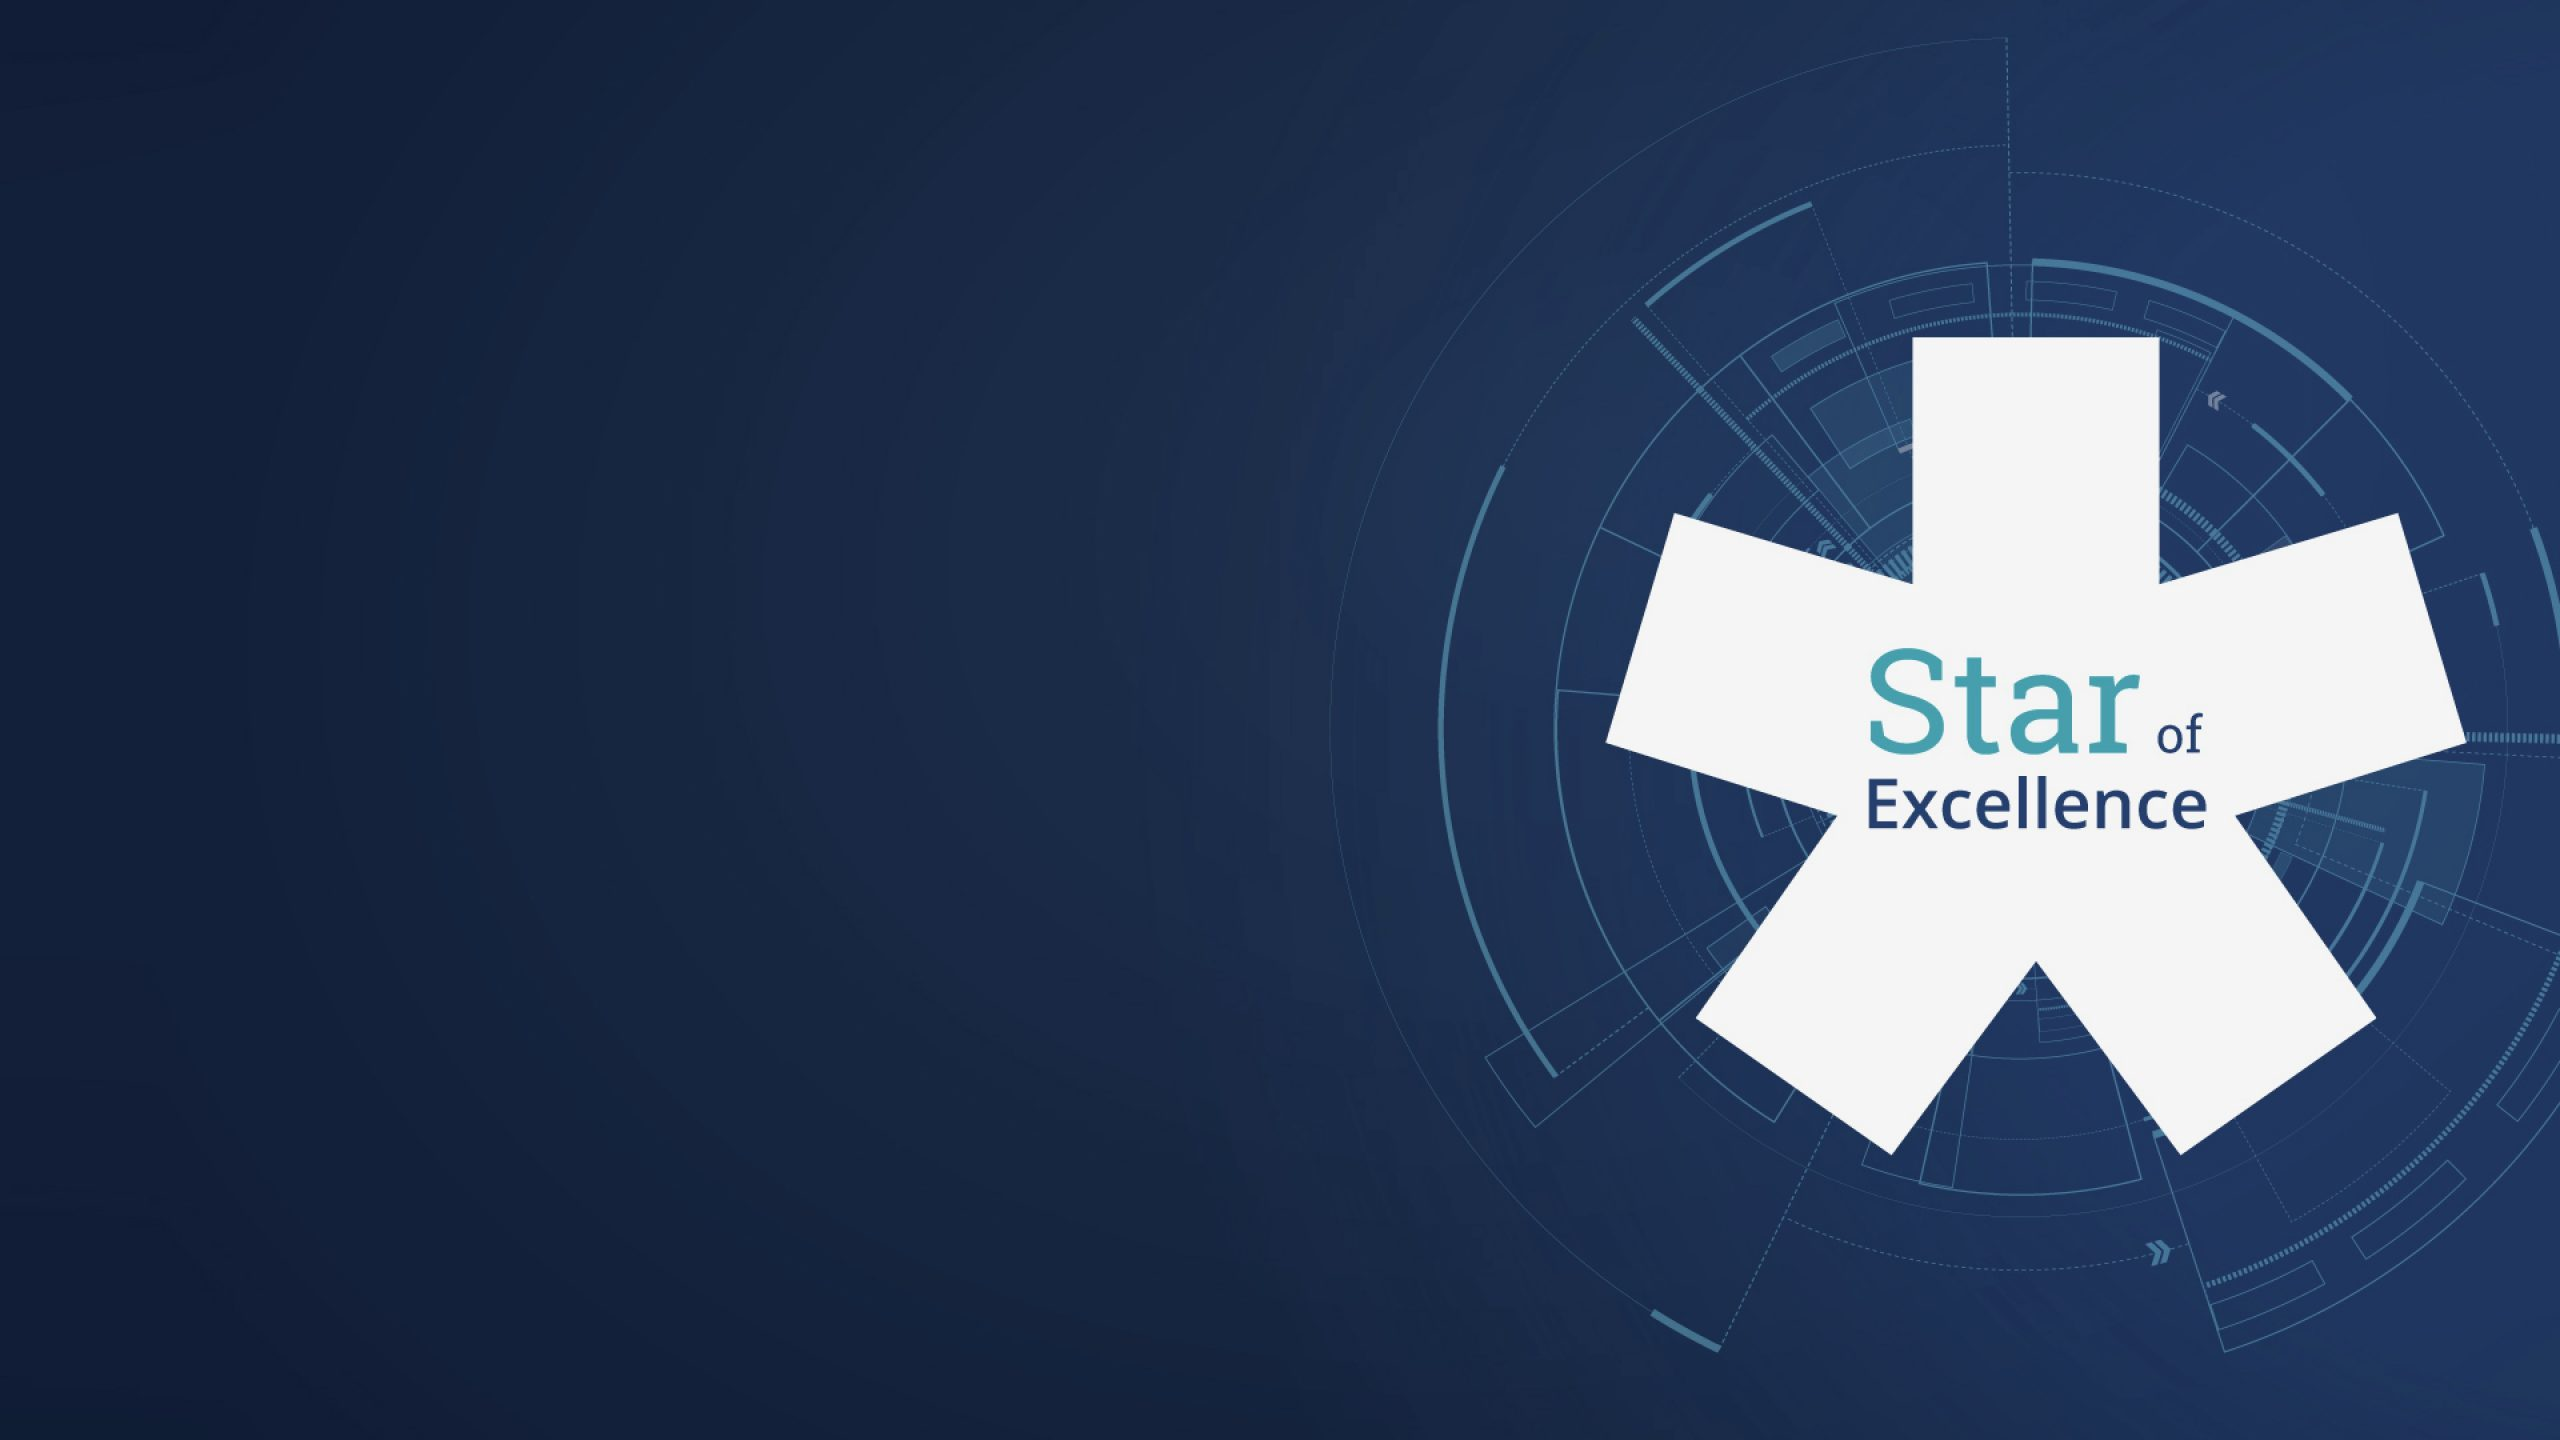 Persistent wins prestigious ISG Star of Excellence Award